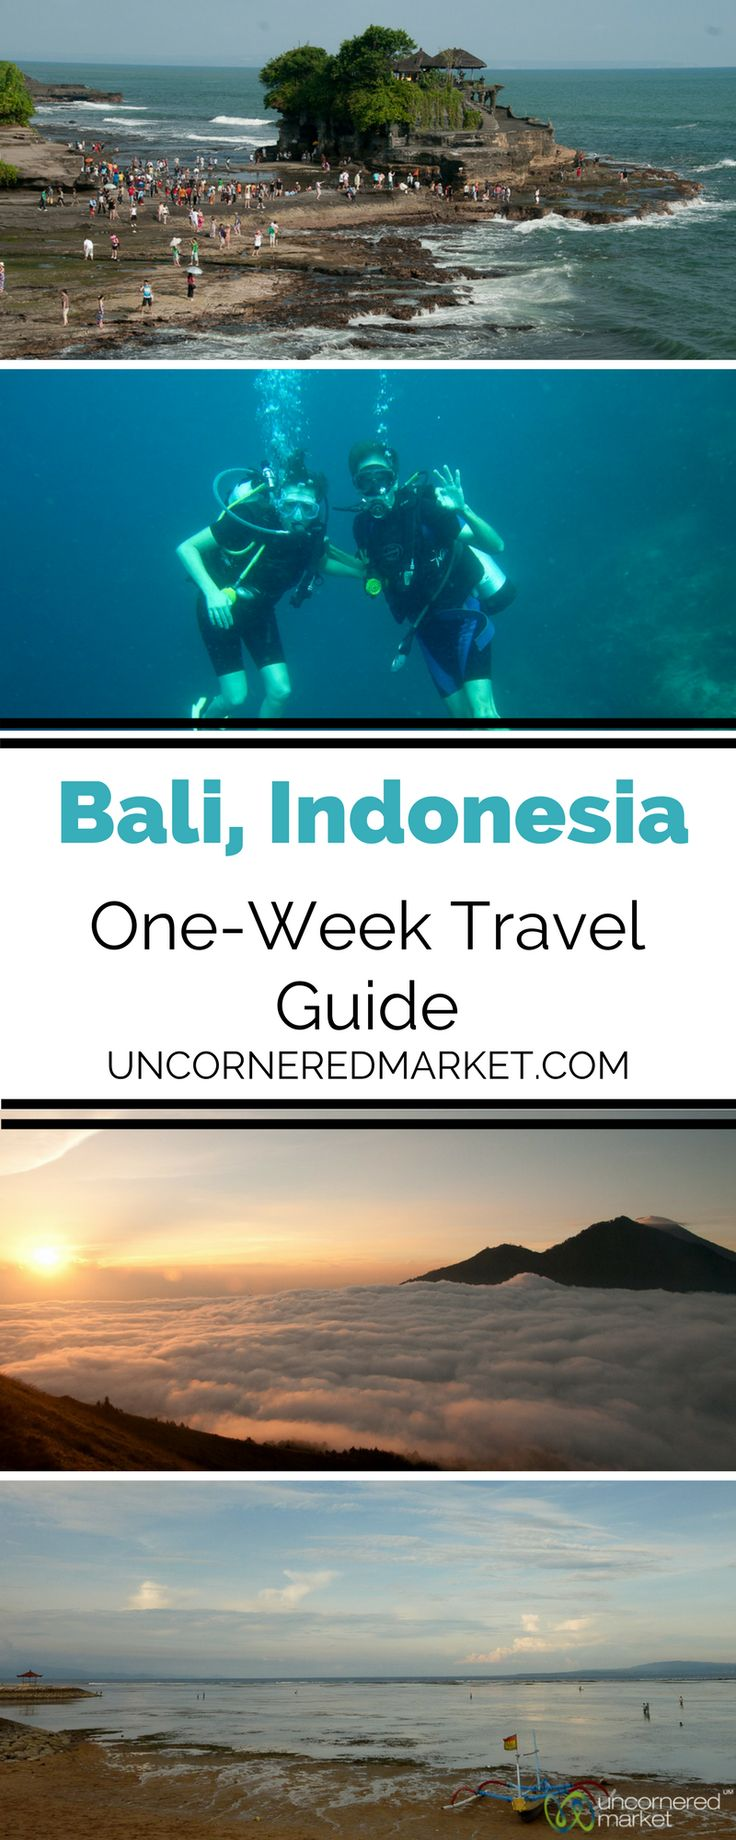 A guide on how to spend a week traveling around Bali, Indonesia. Itinerary suggestions to climb volcanoes, go scuba diving, take a Balinese cooking course, watch a Kecak show, visit Balinese temples, relax on the beach, chill in Ubud, and much more. | Uncornered Market Travel Blog